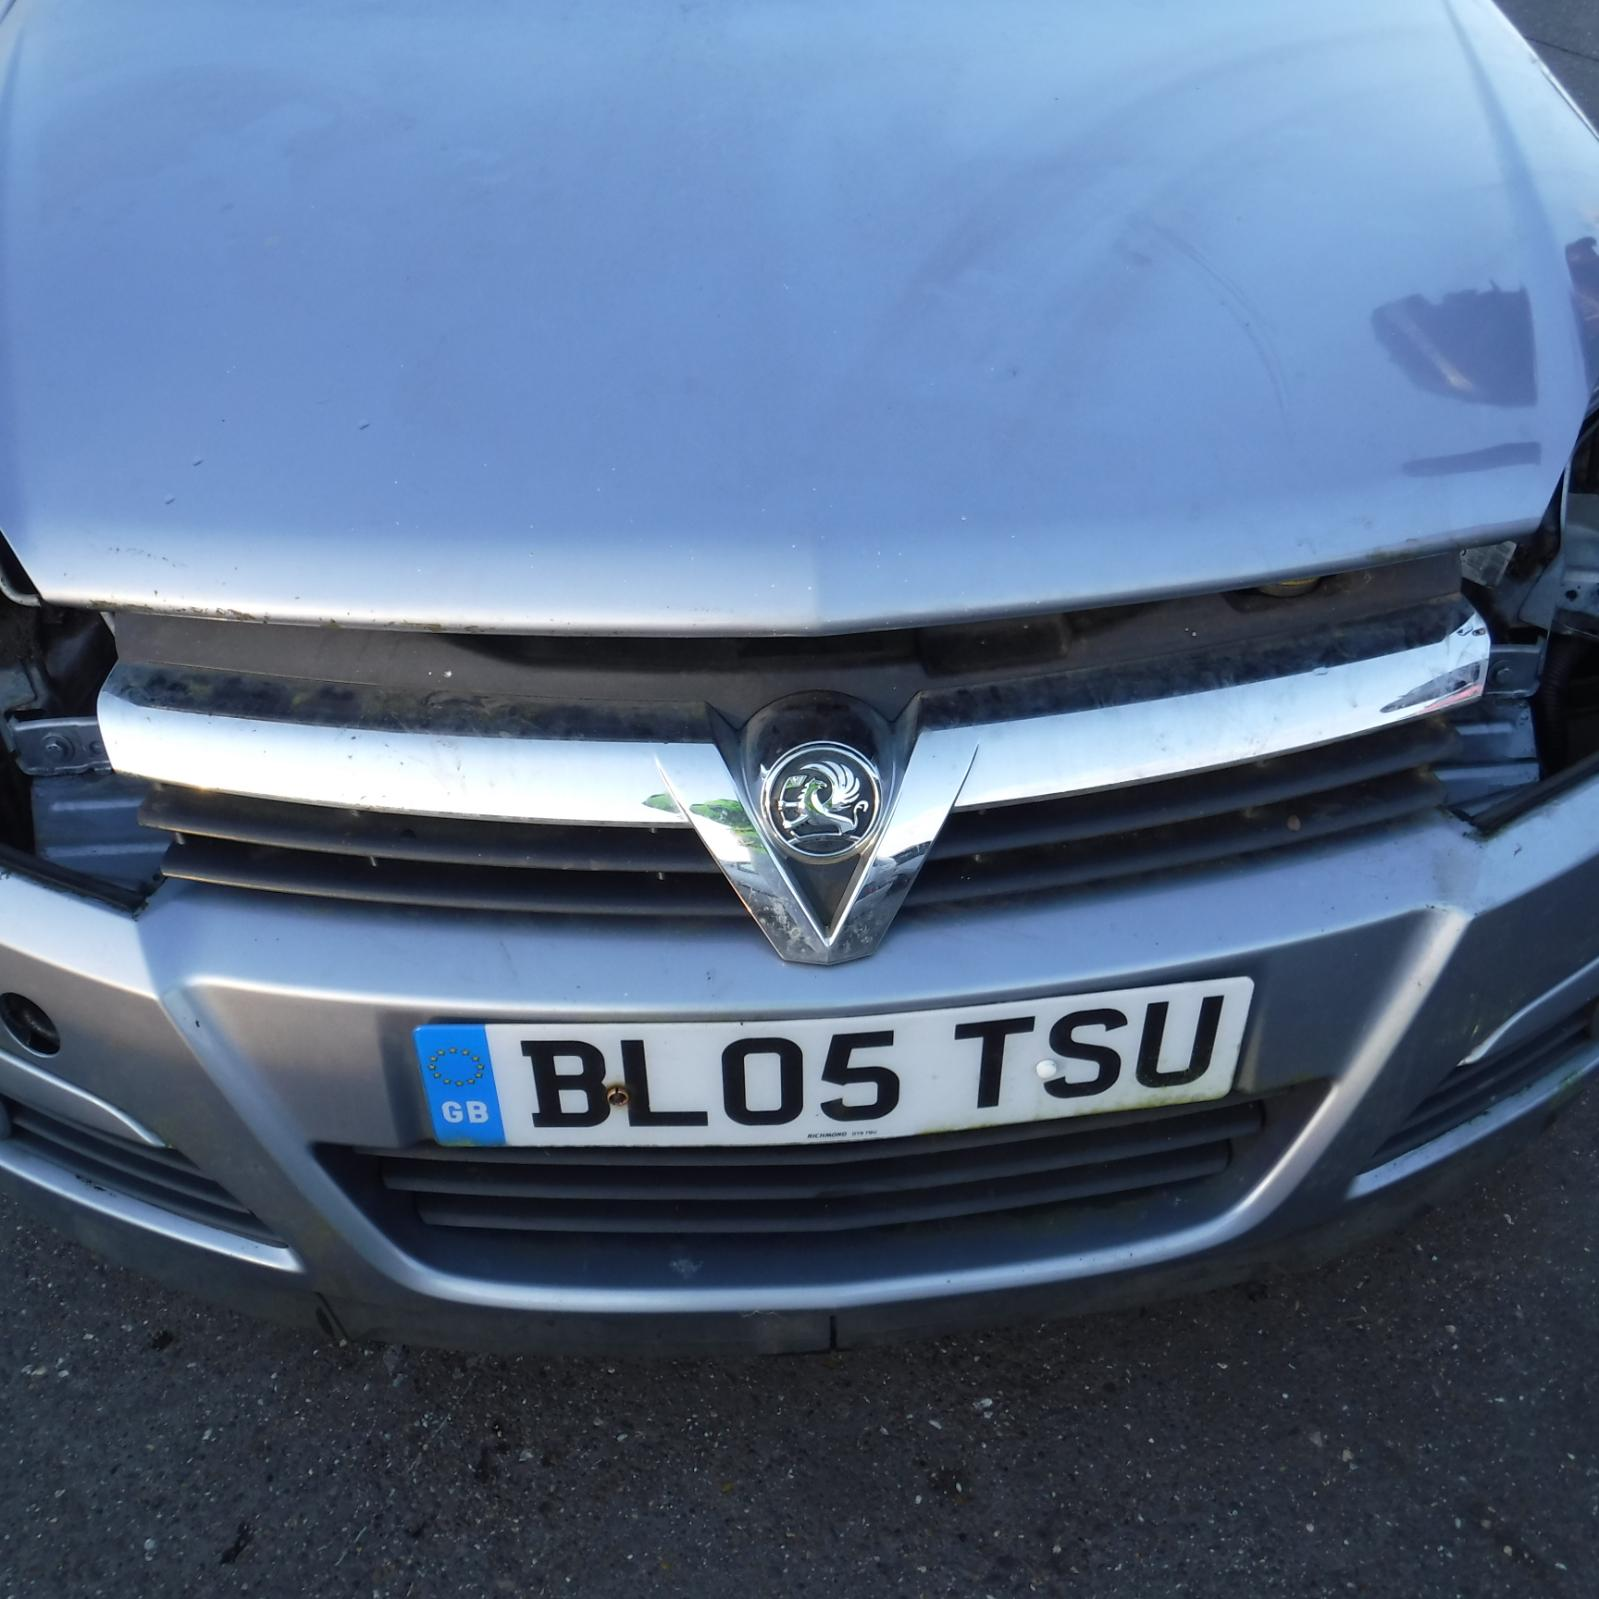 VAUXHALL ASTRA MK5 2005 JDS REF-880 / FRONT GRILLE GRILL